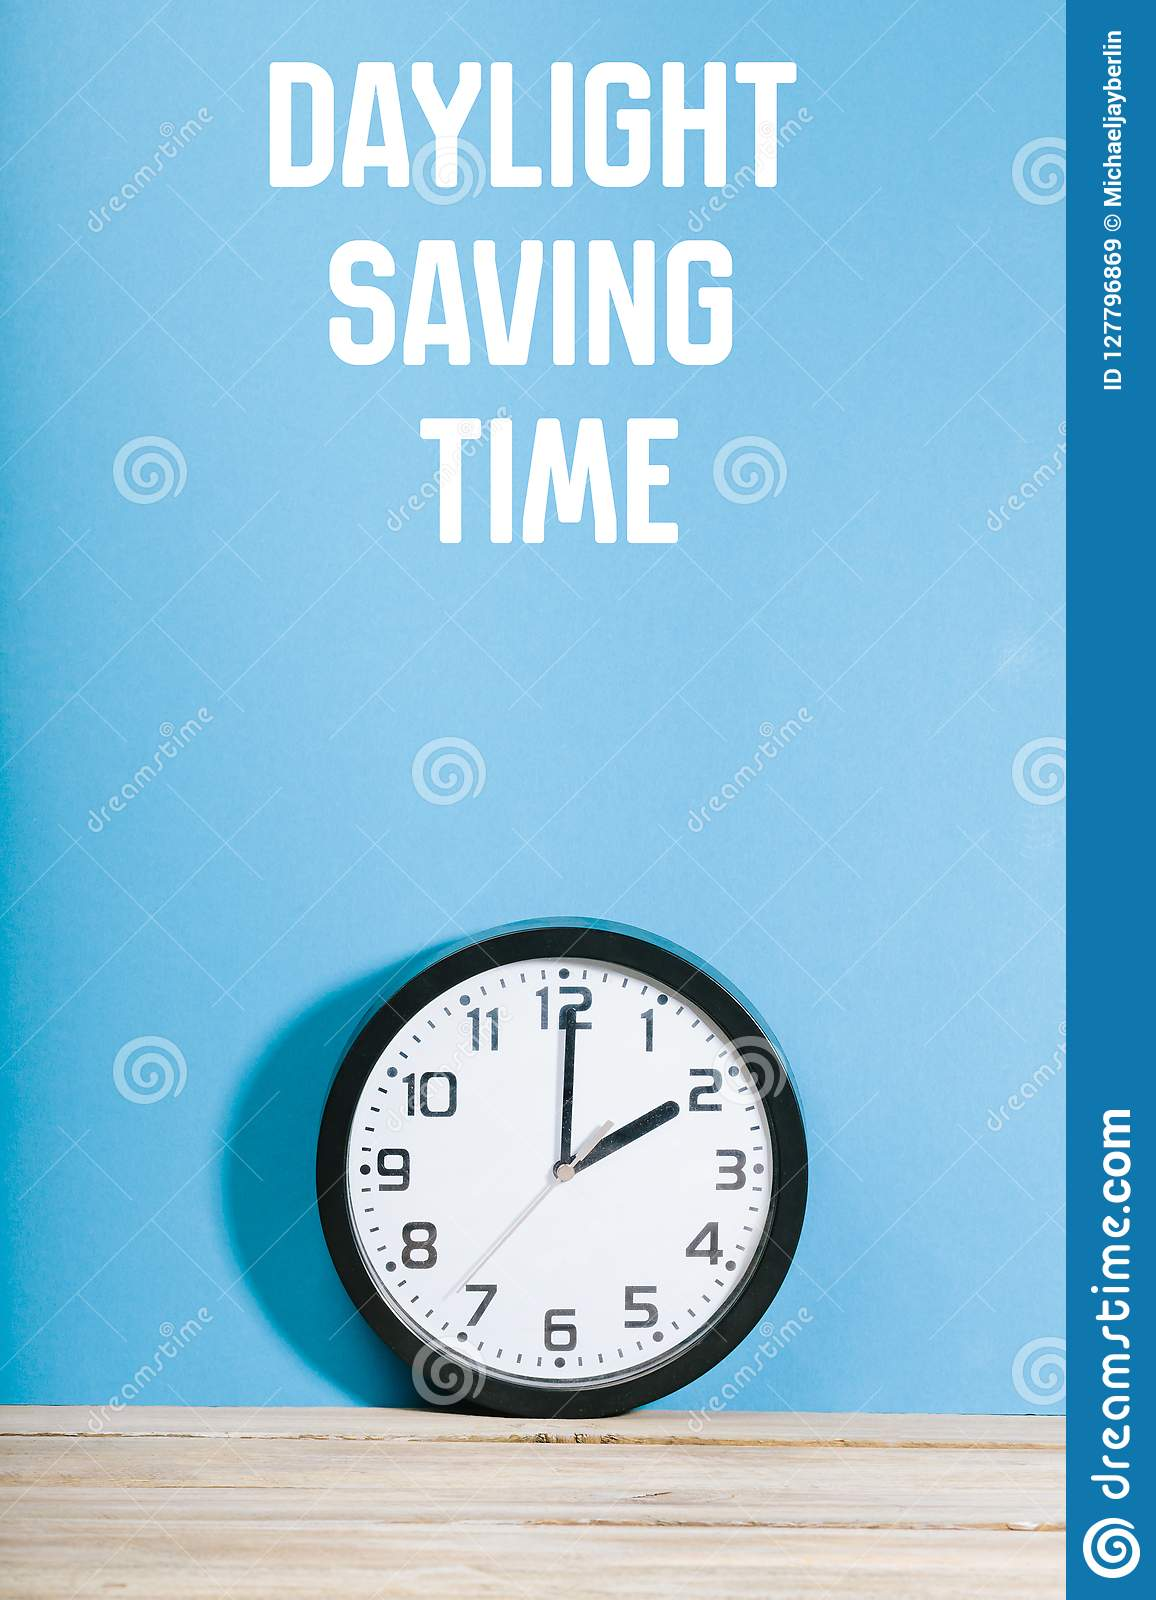 Clock On Table With Daylight Saving Time Message Stock Image - Image